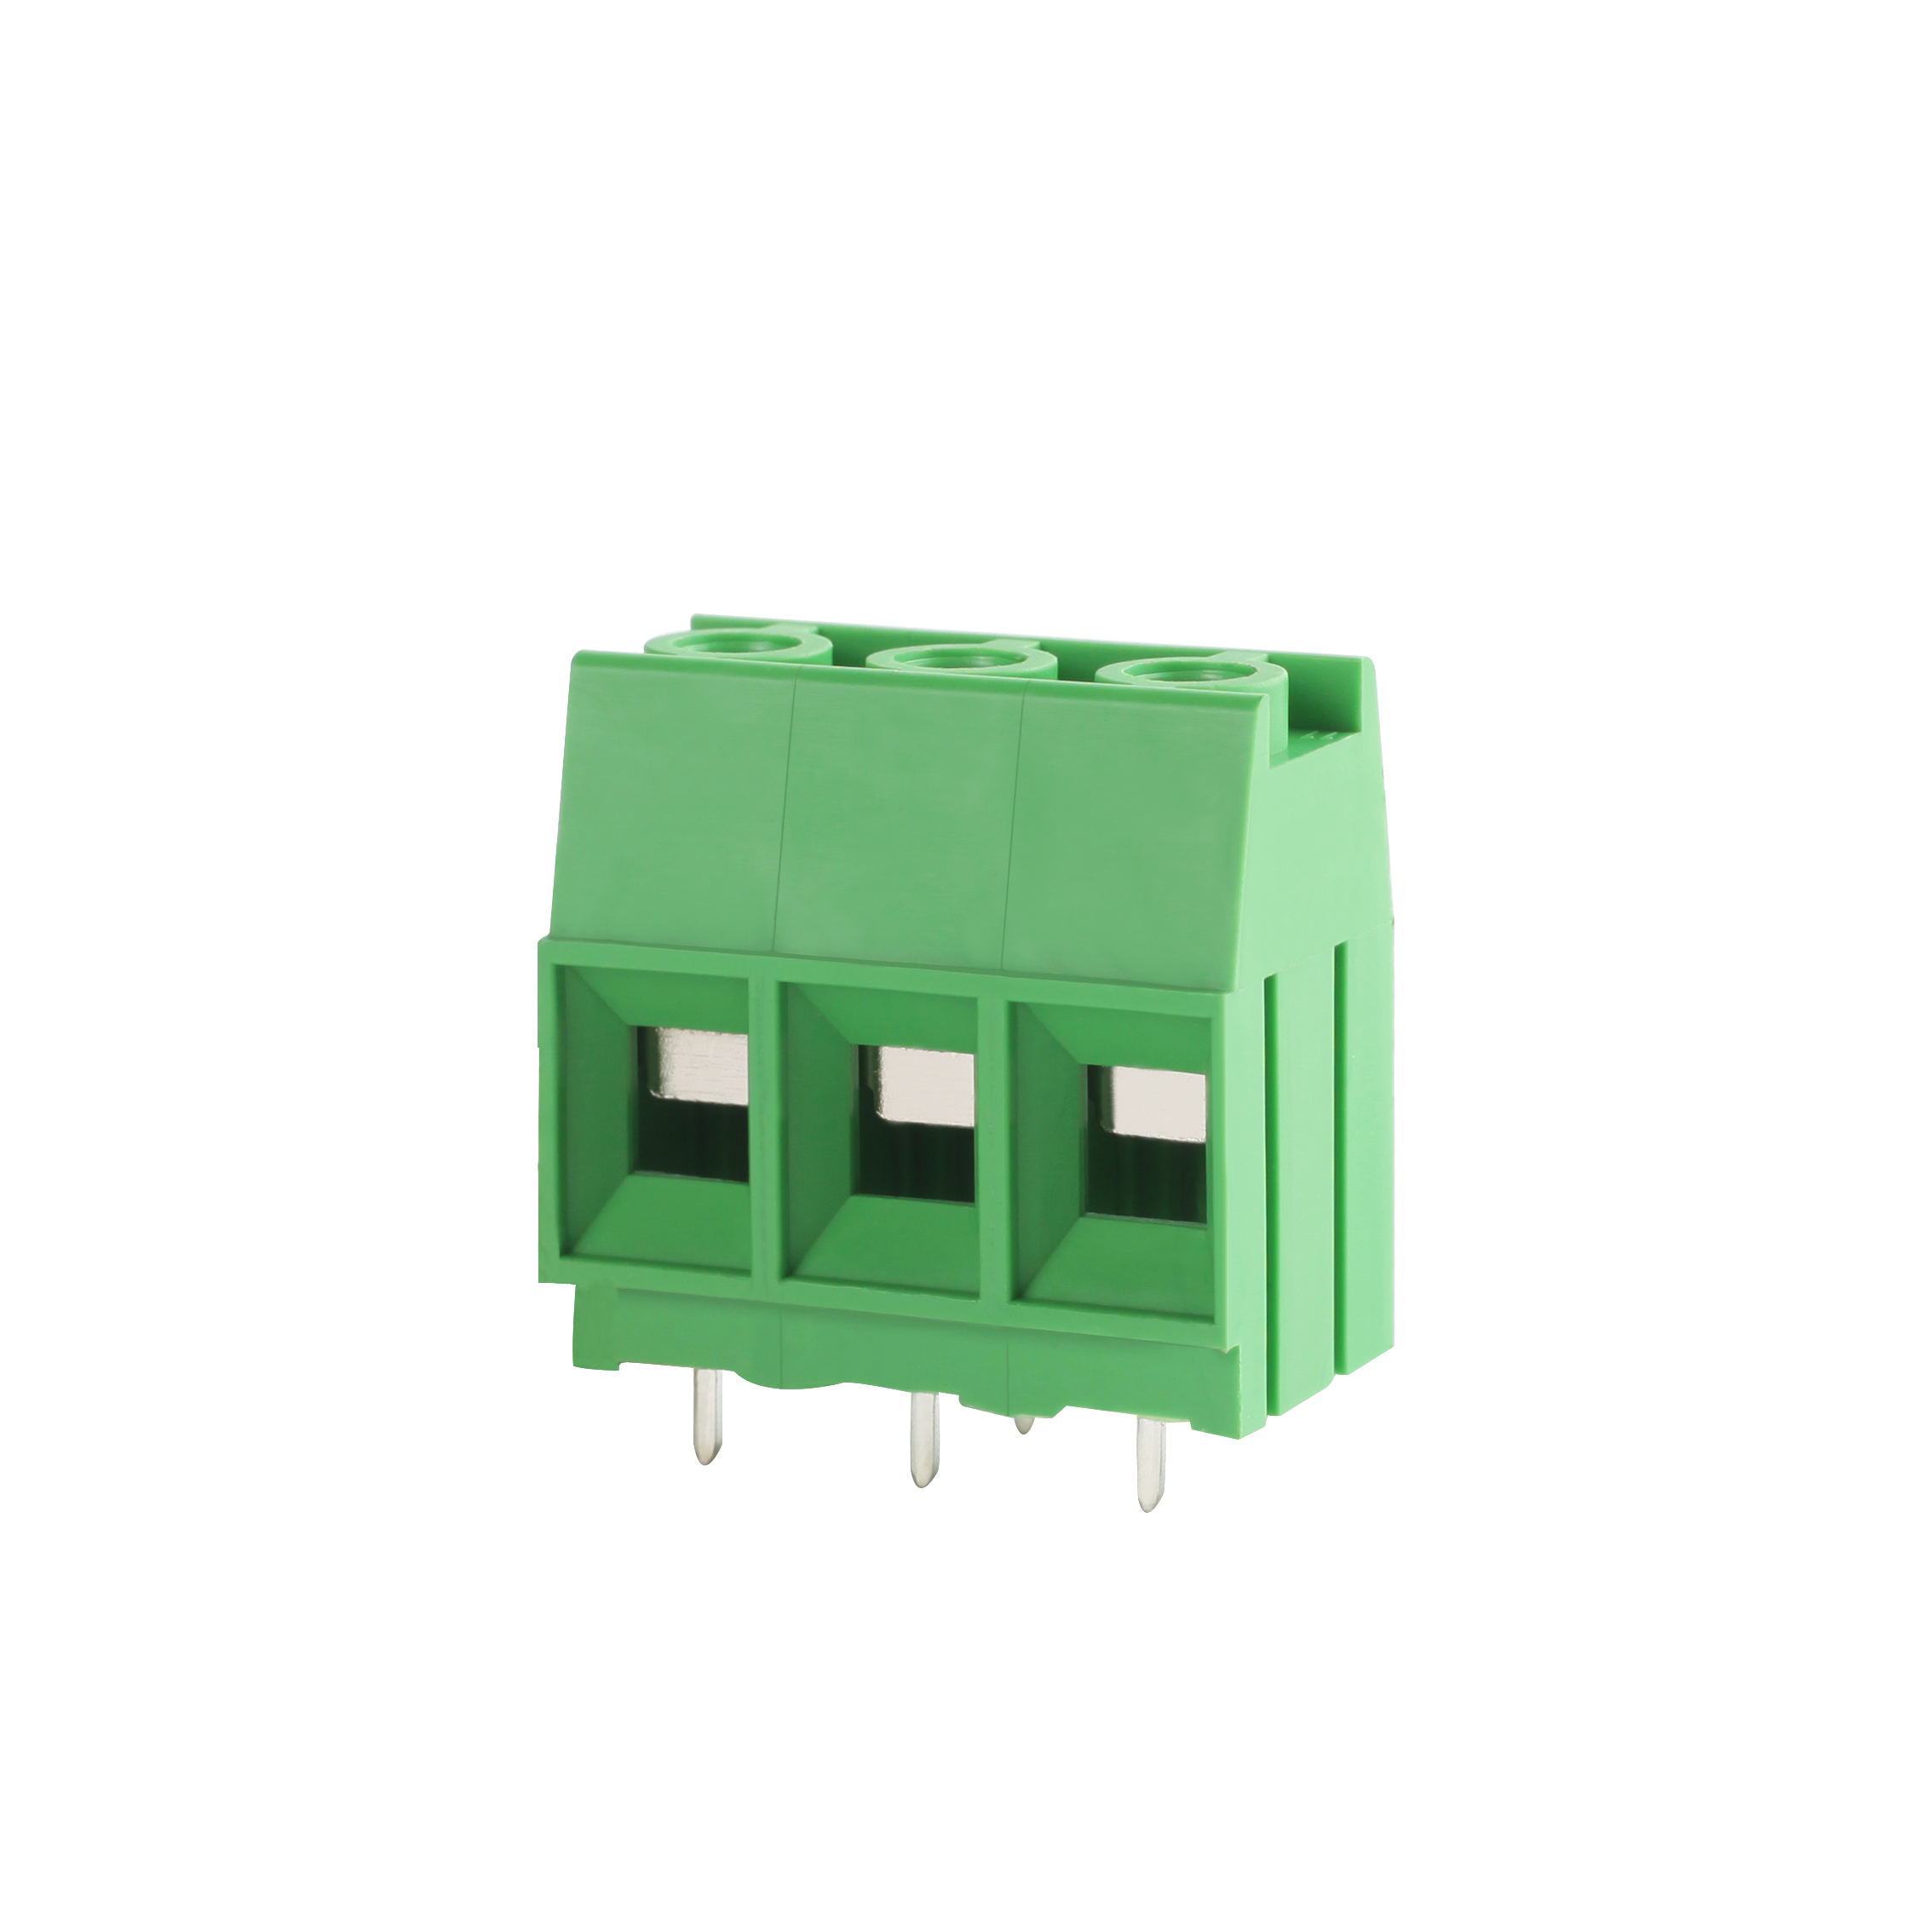 10.16mm pitch PCB high quality plastic electrical components screw terminal blocks